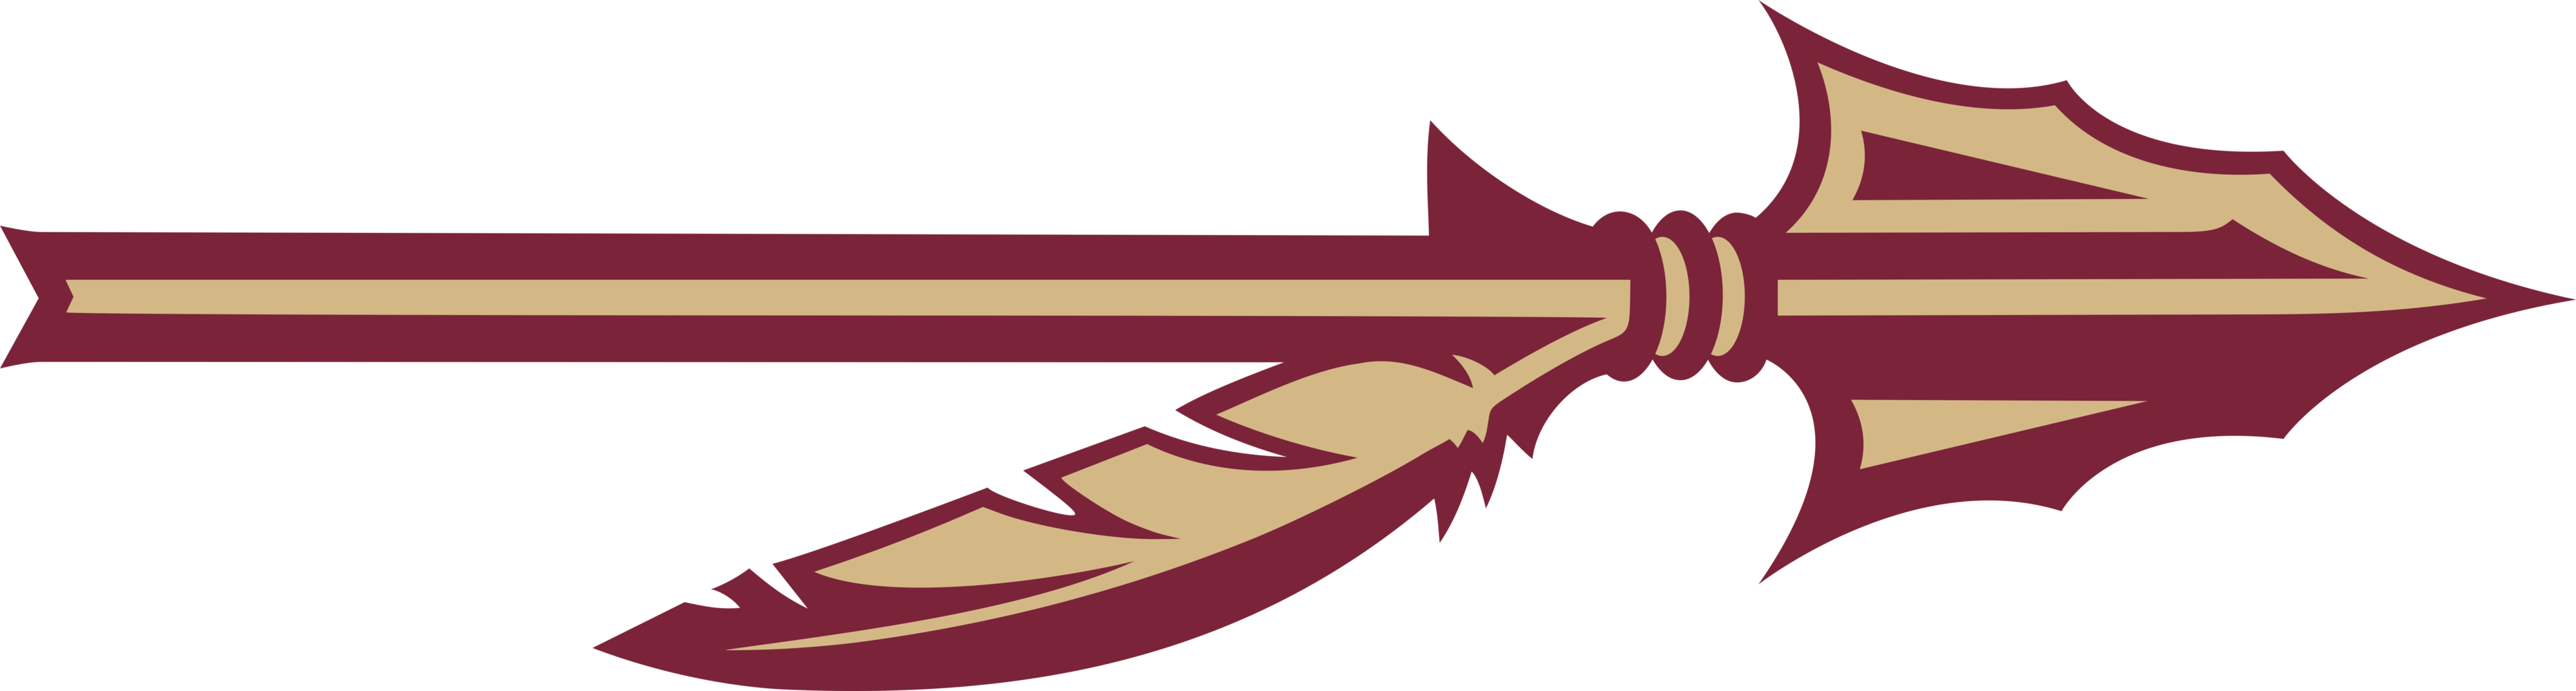 Indian clipart spear. Florida state seminoles team